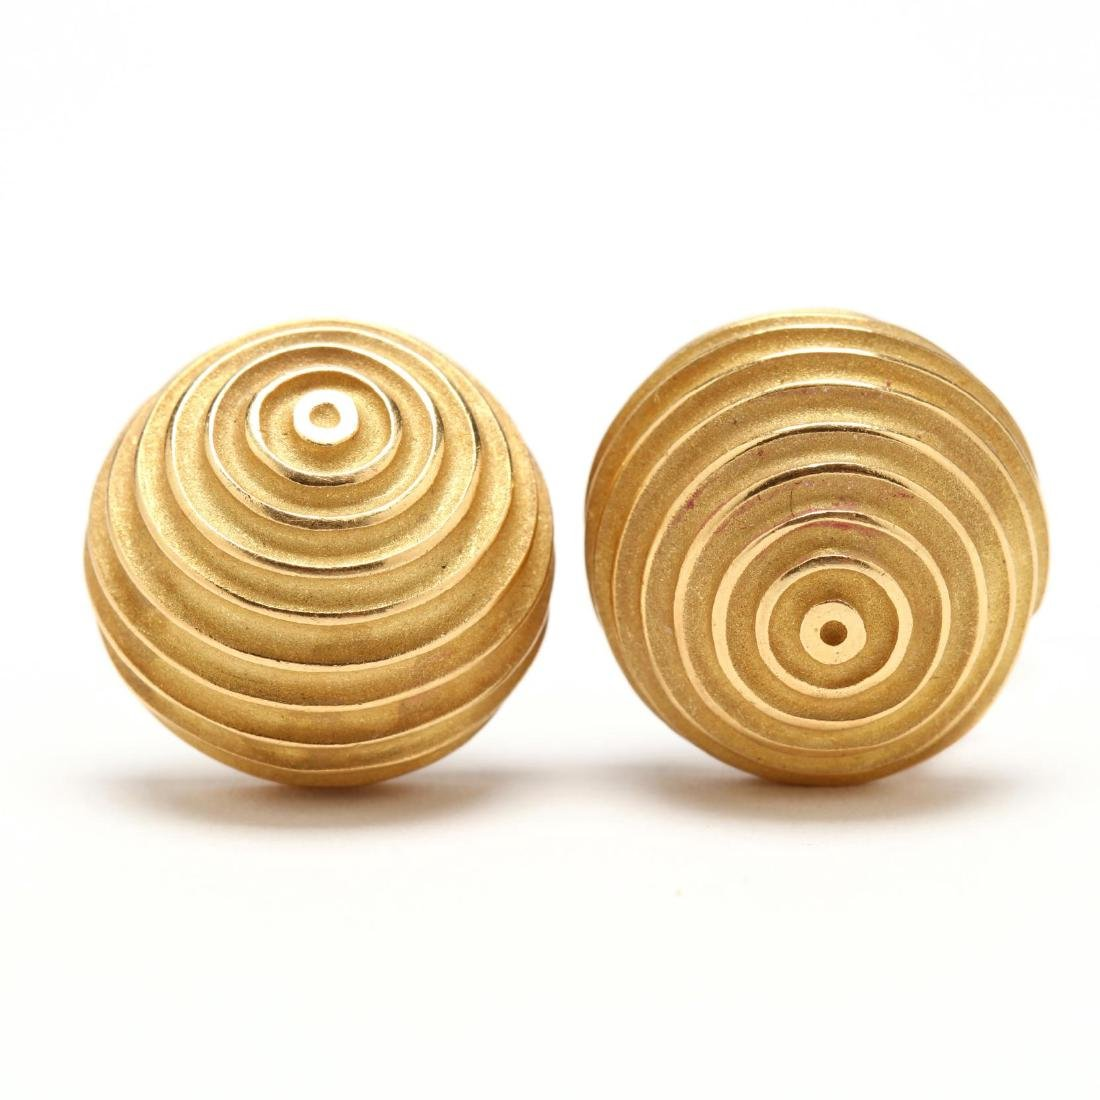 """18KT Gold """"Ridged Dome"""" Earrings, Christopher Walling"""